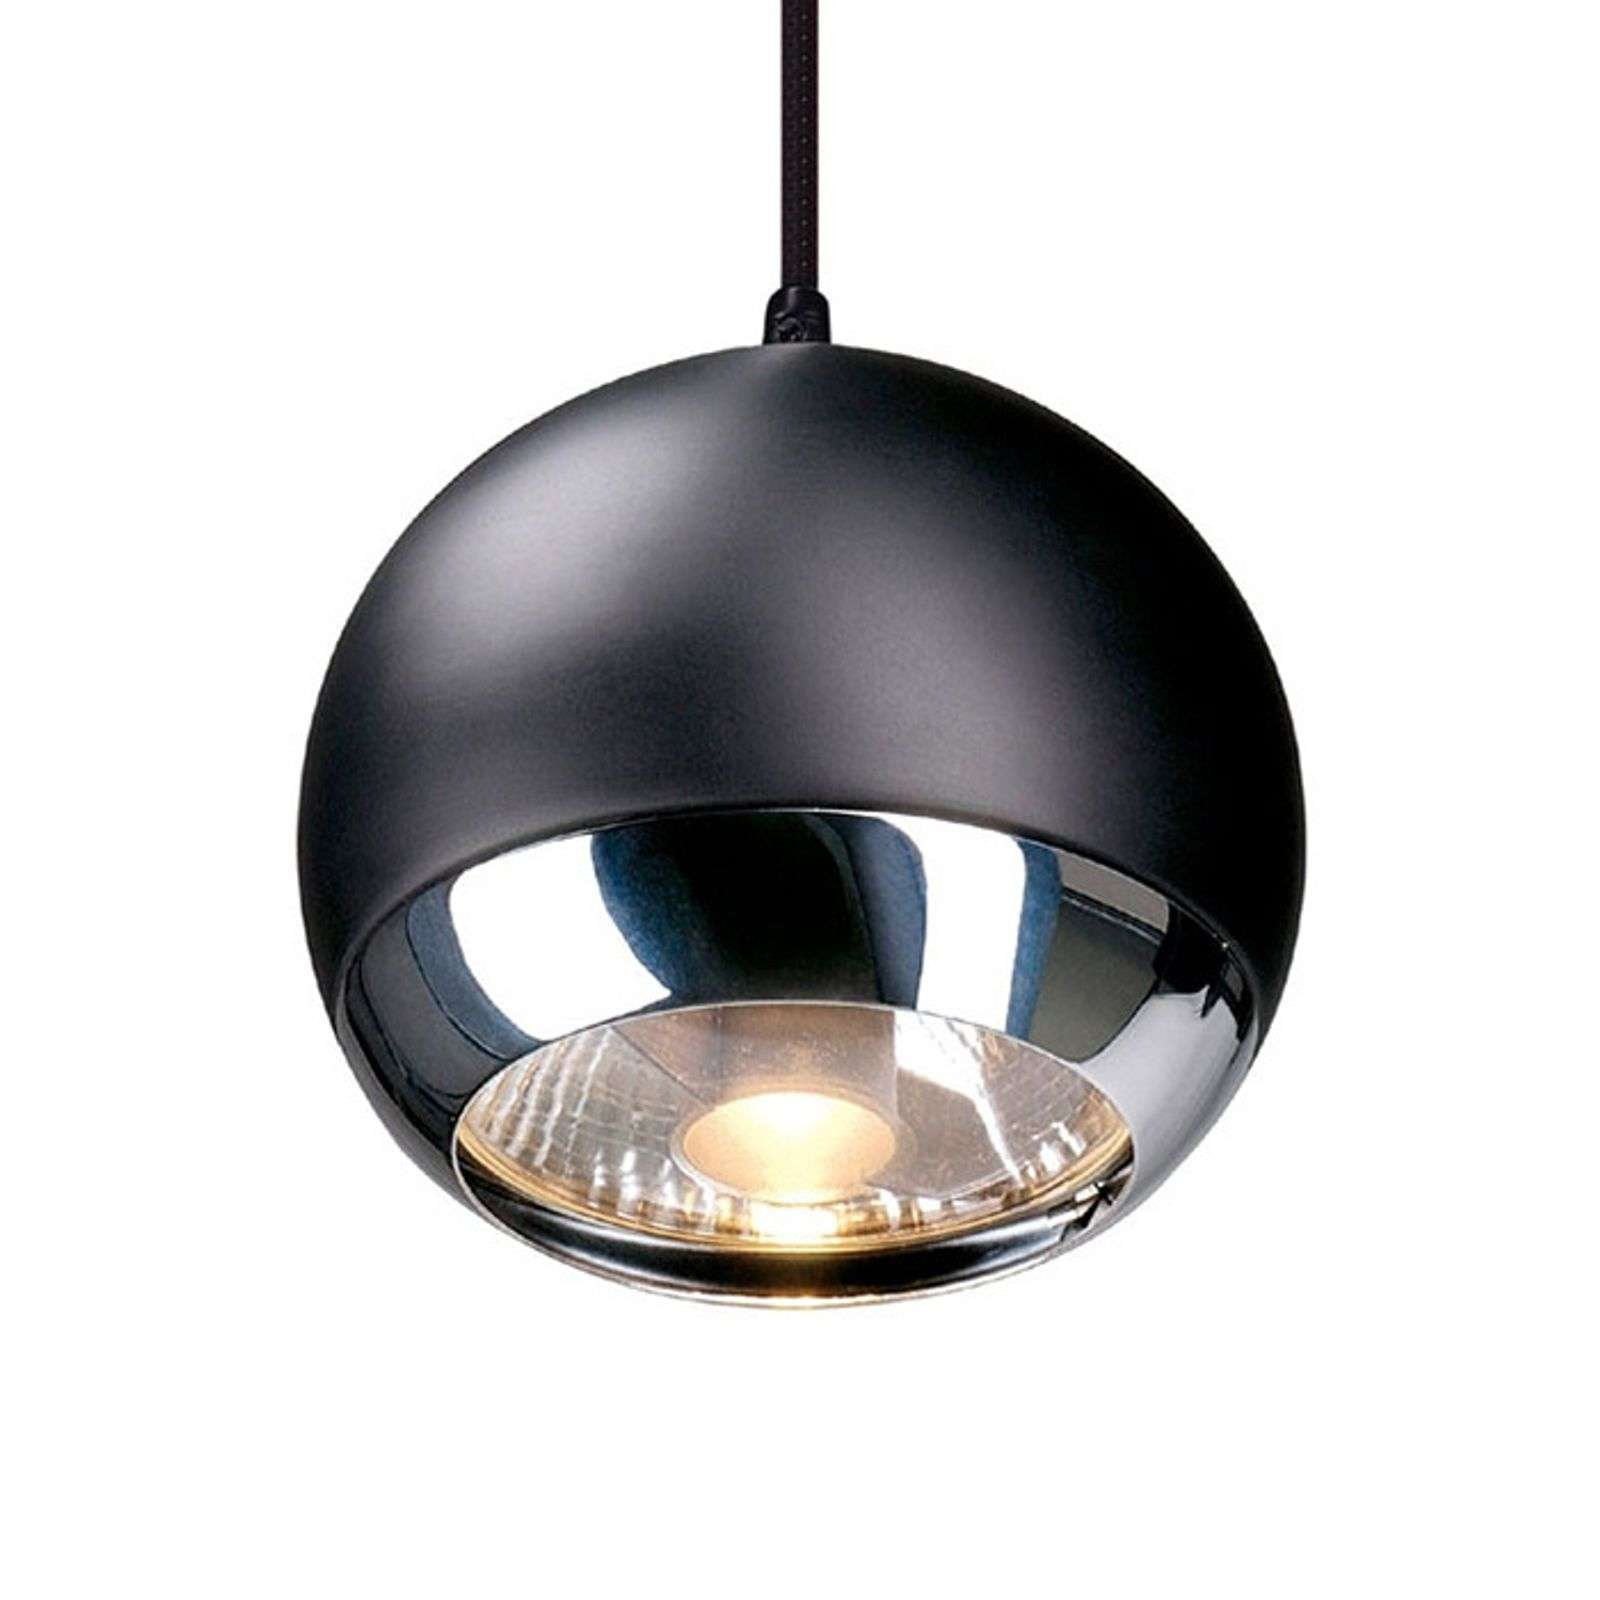 Suspension Light Eye pour rails Easytec II HT